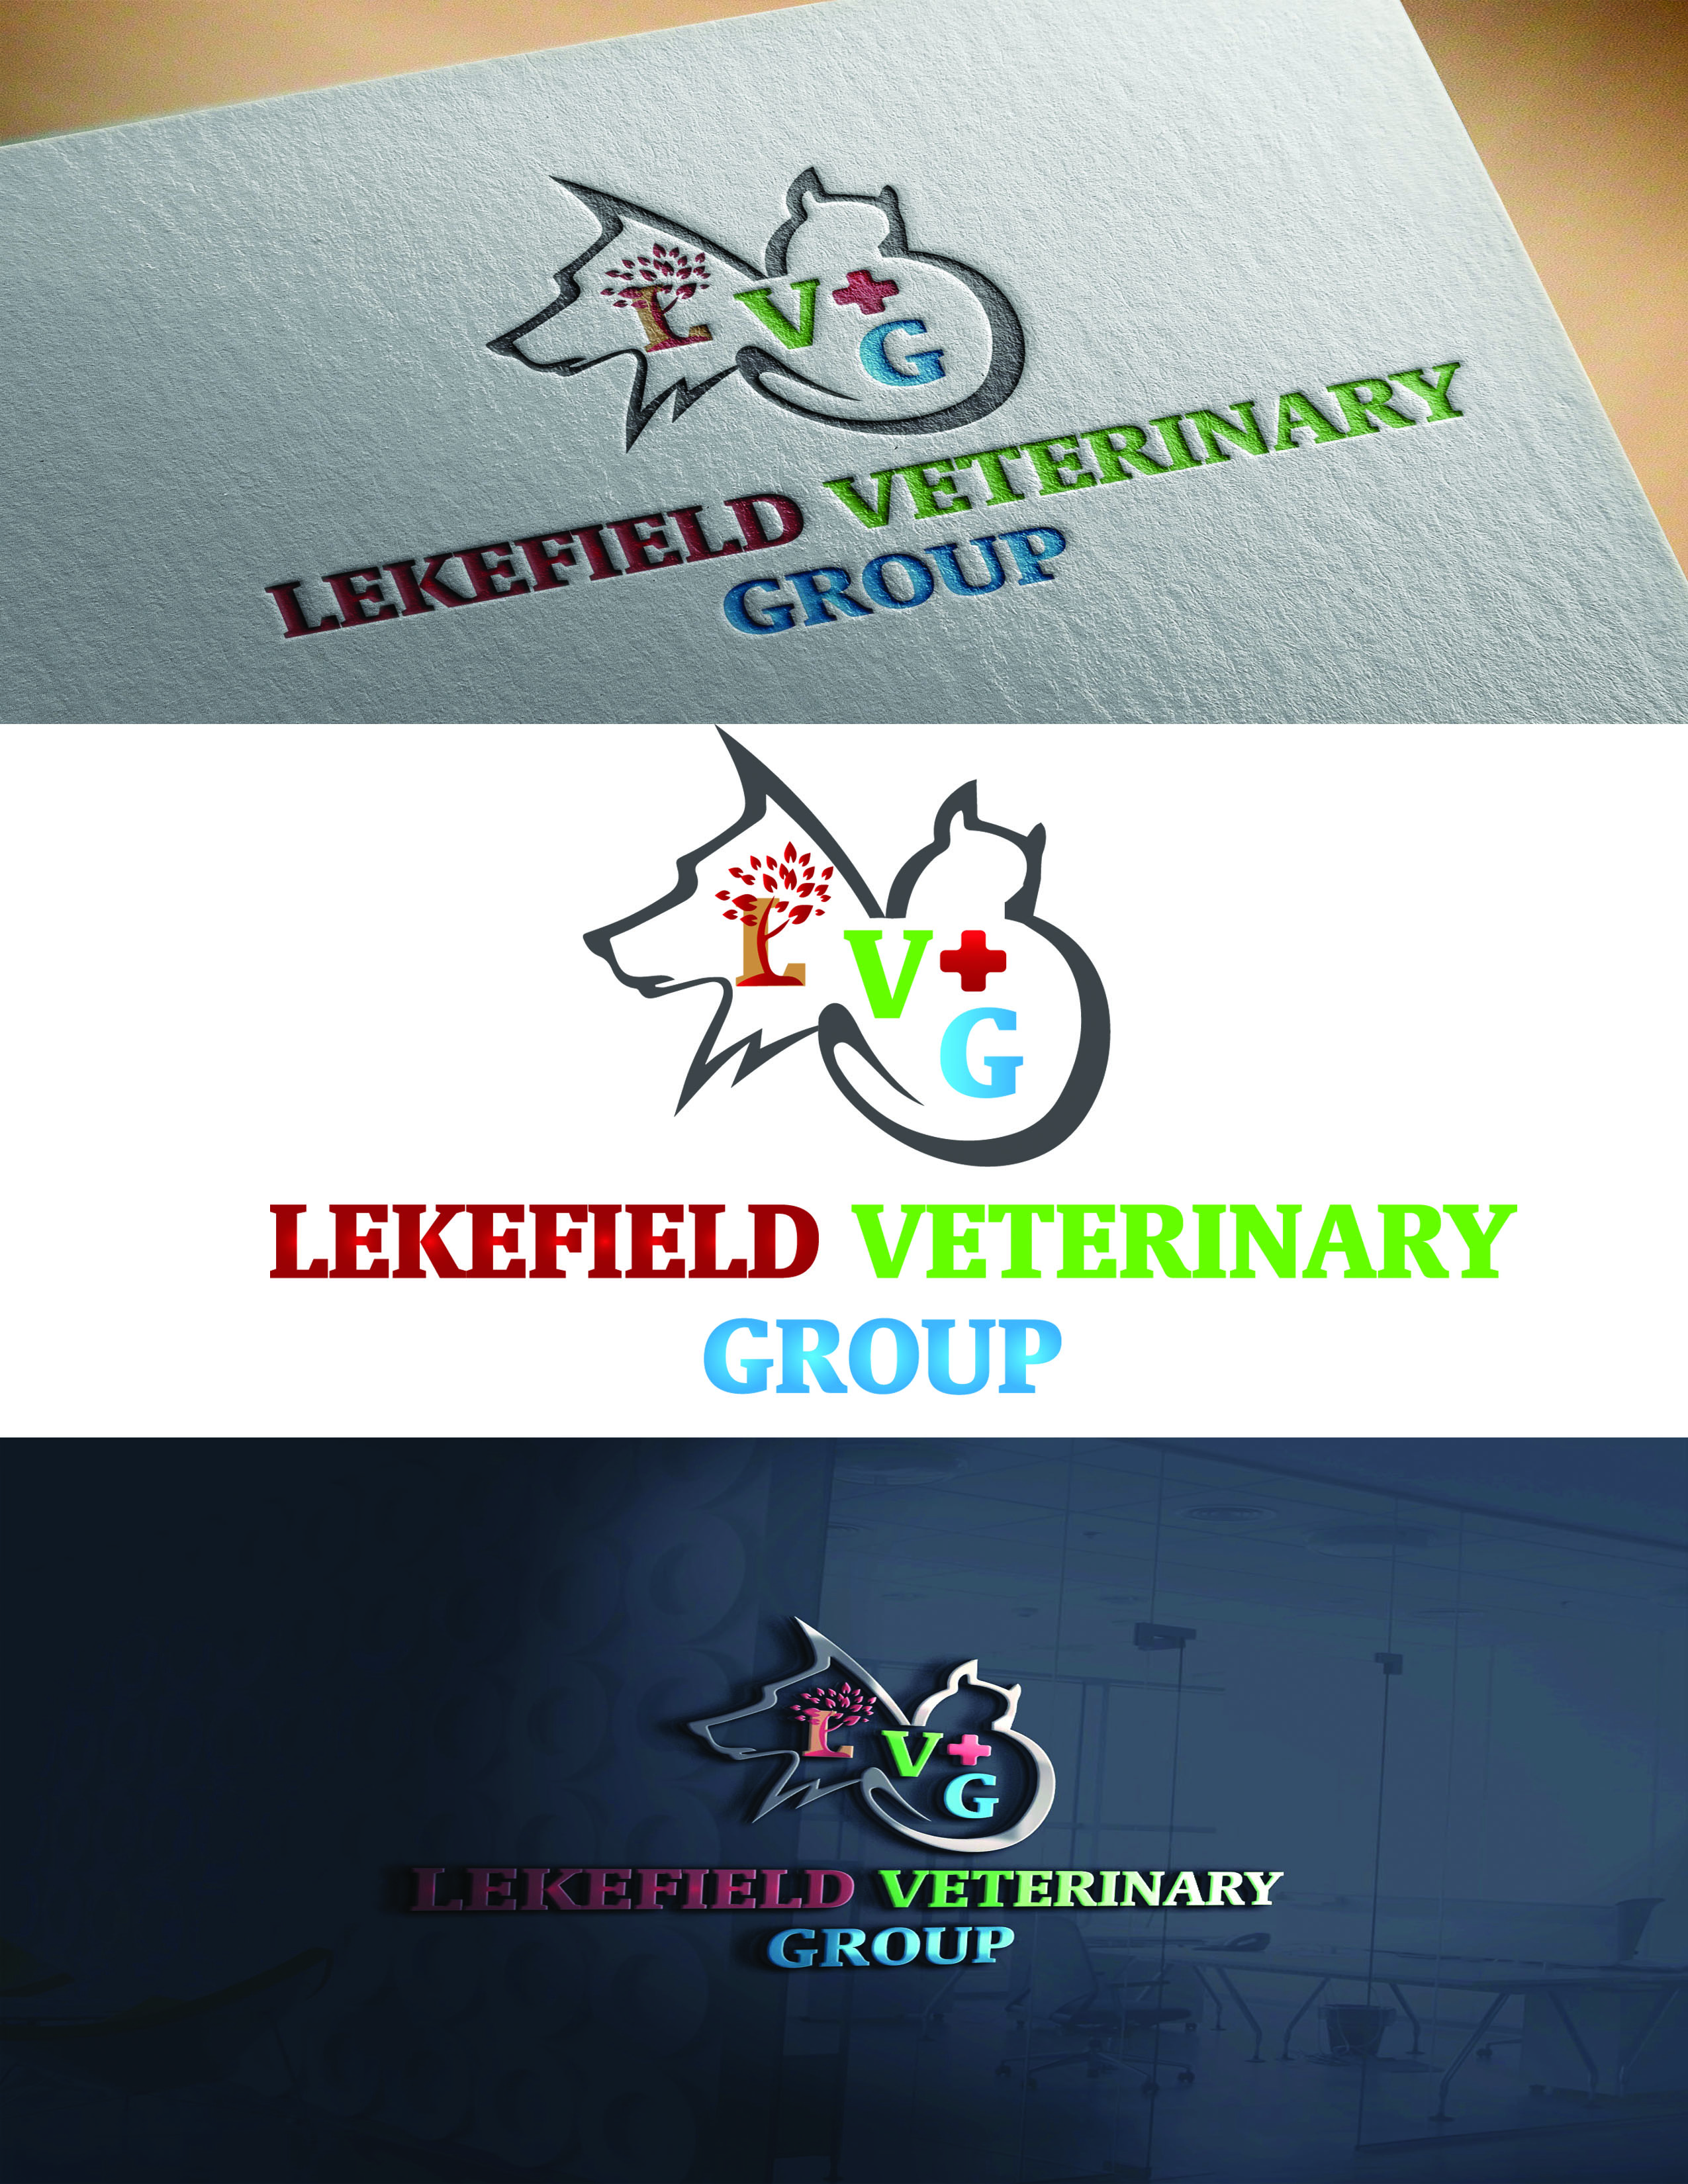 Logo Design by Umair ahmed Iqbal - Entry No. 39 in the Logo Design Contest Inspiring Logo Design for Lakefield Veterinary Group.